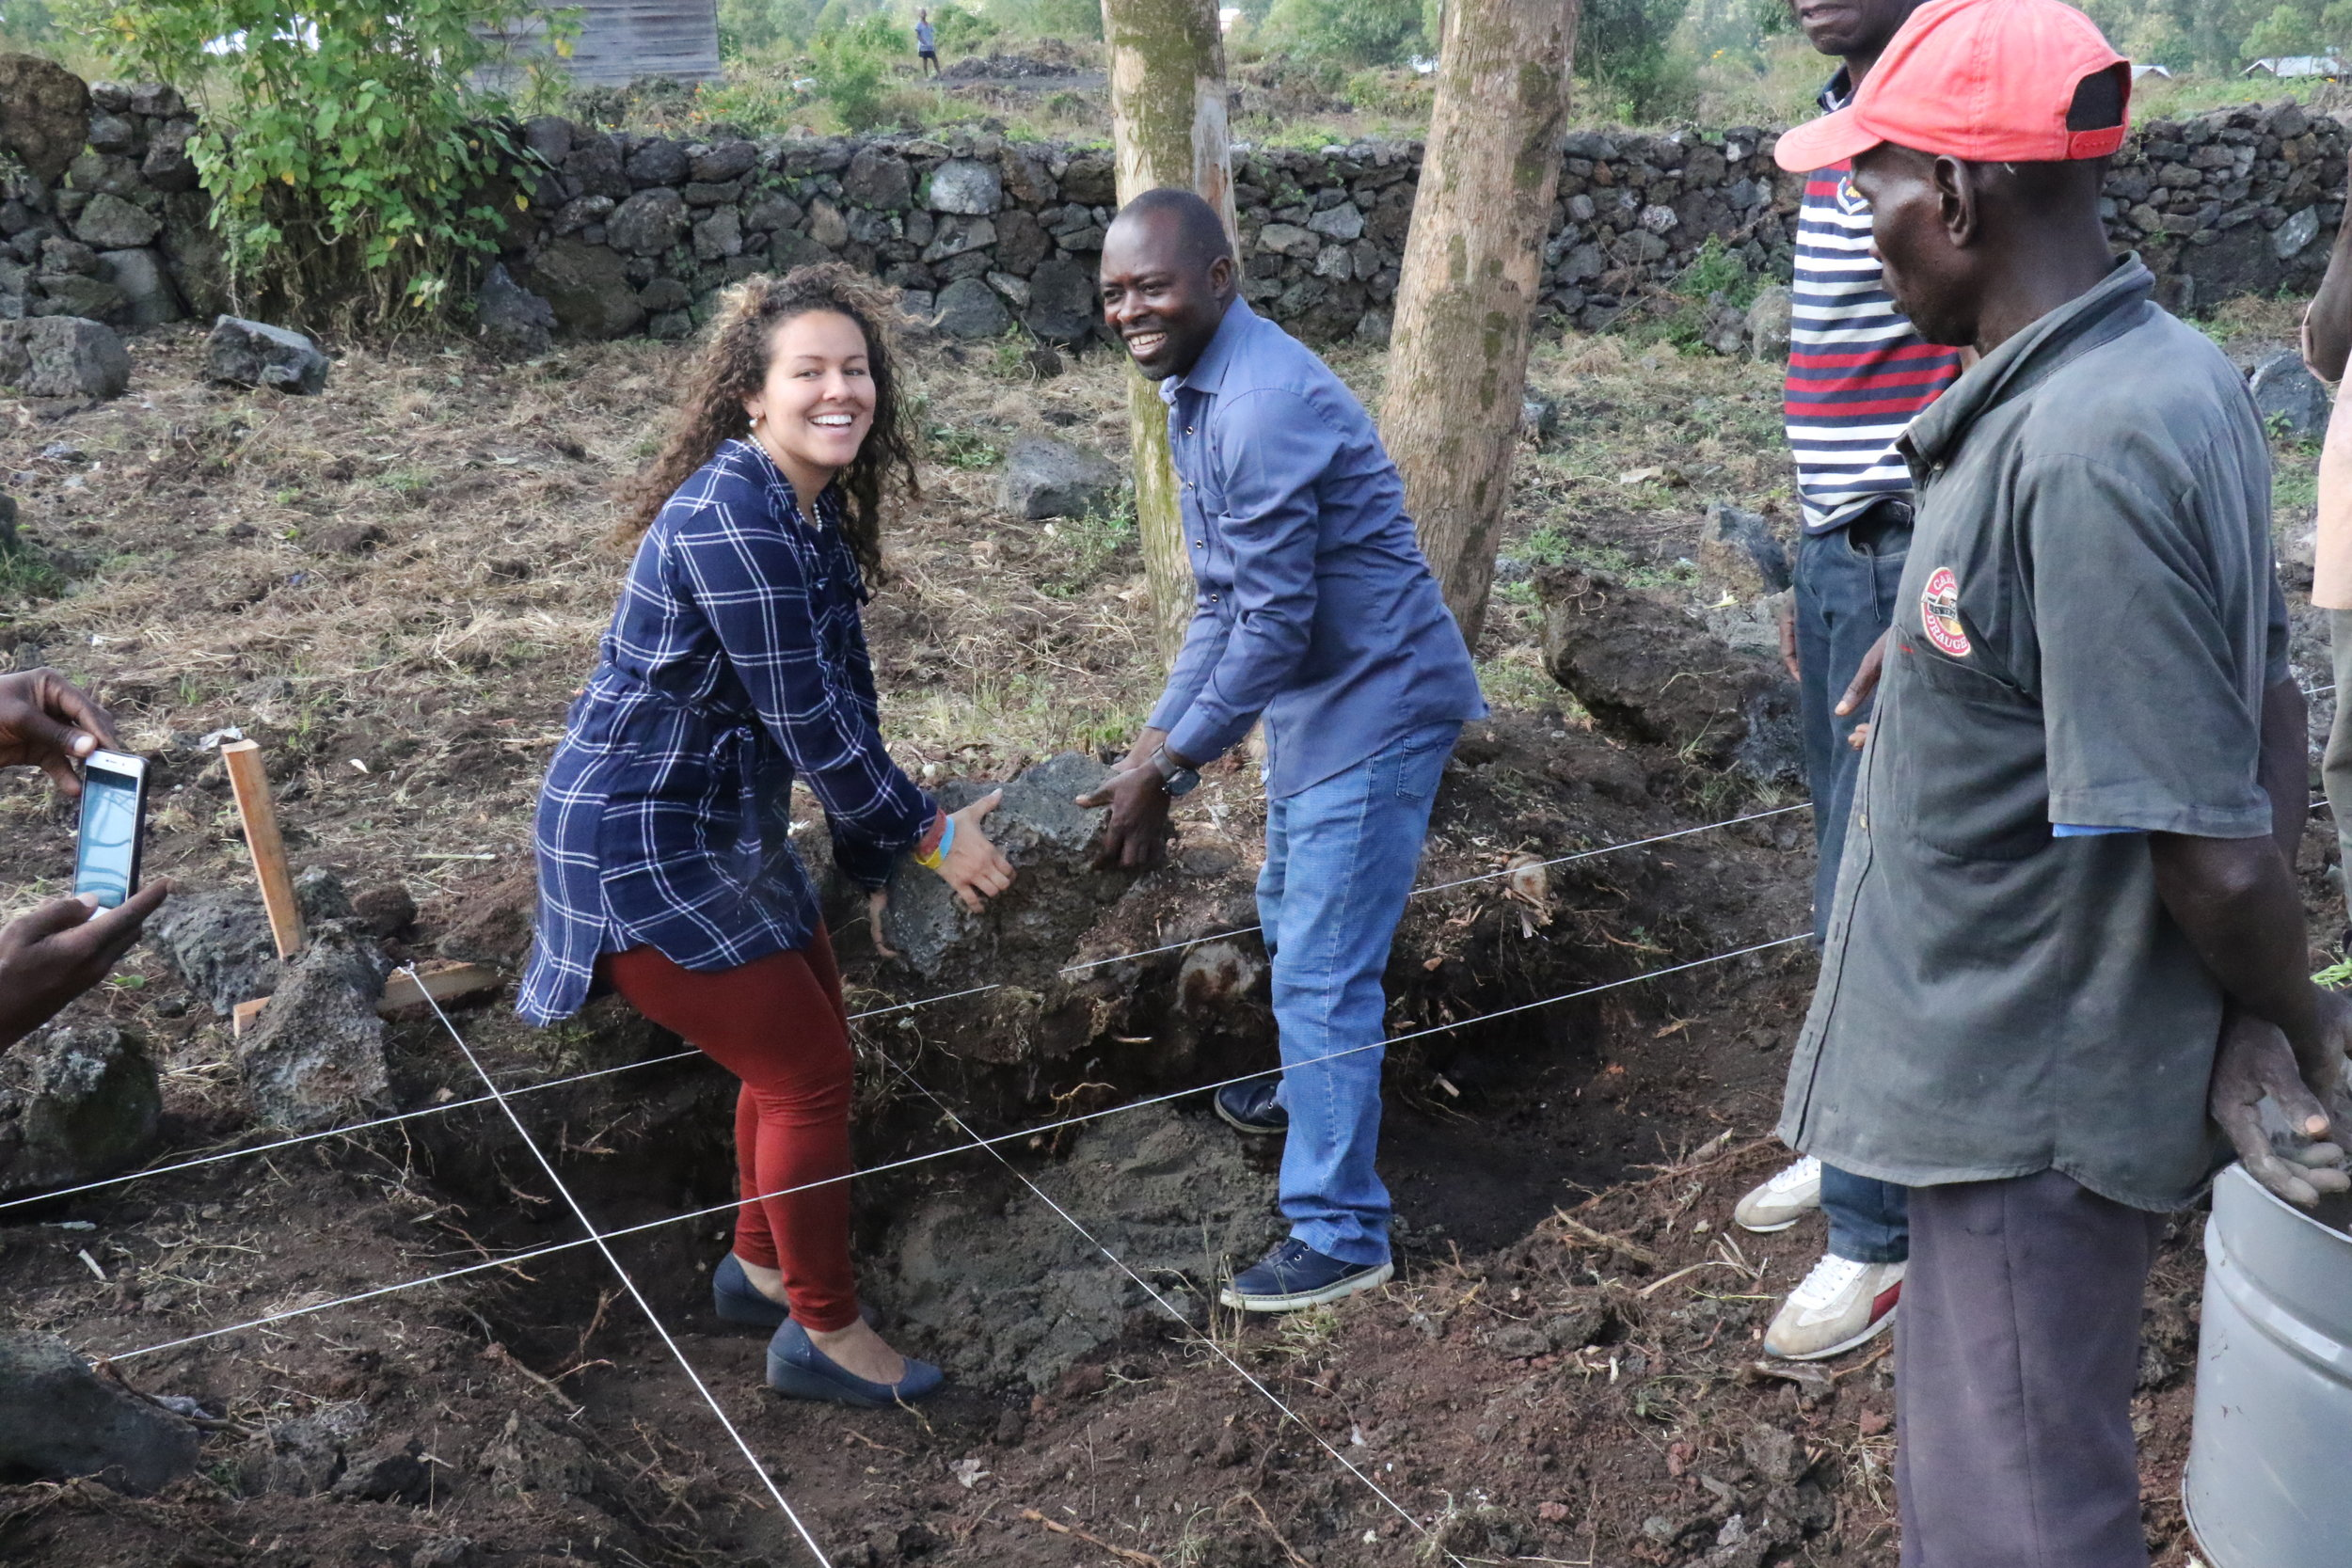 Amethyst Roth and Euclide Mugisho, two of the founders of the community lay the corner stone to start the building process.